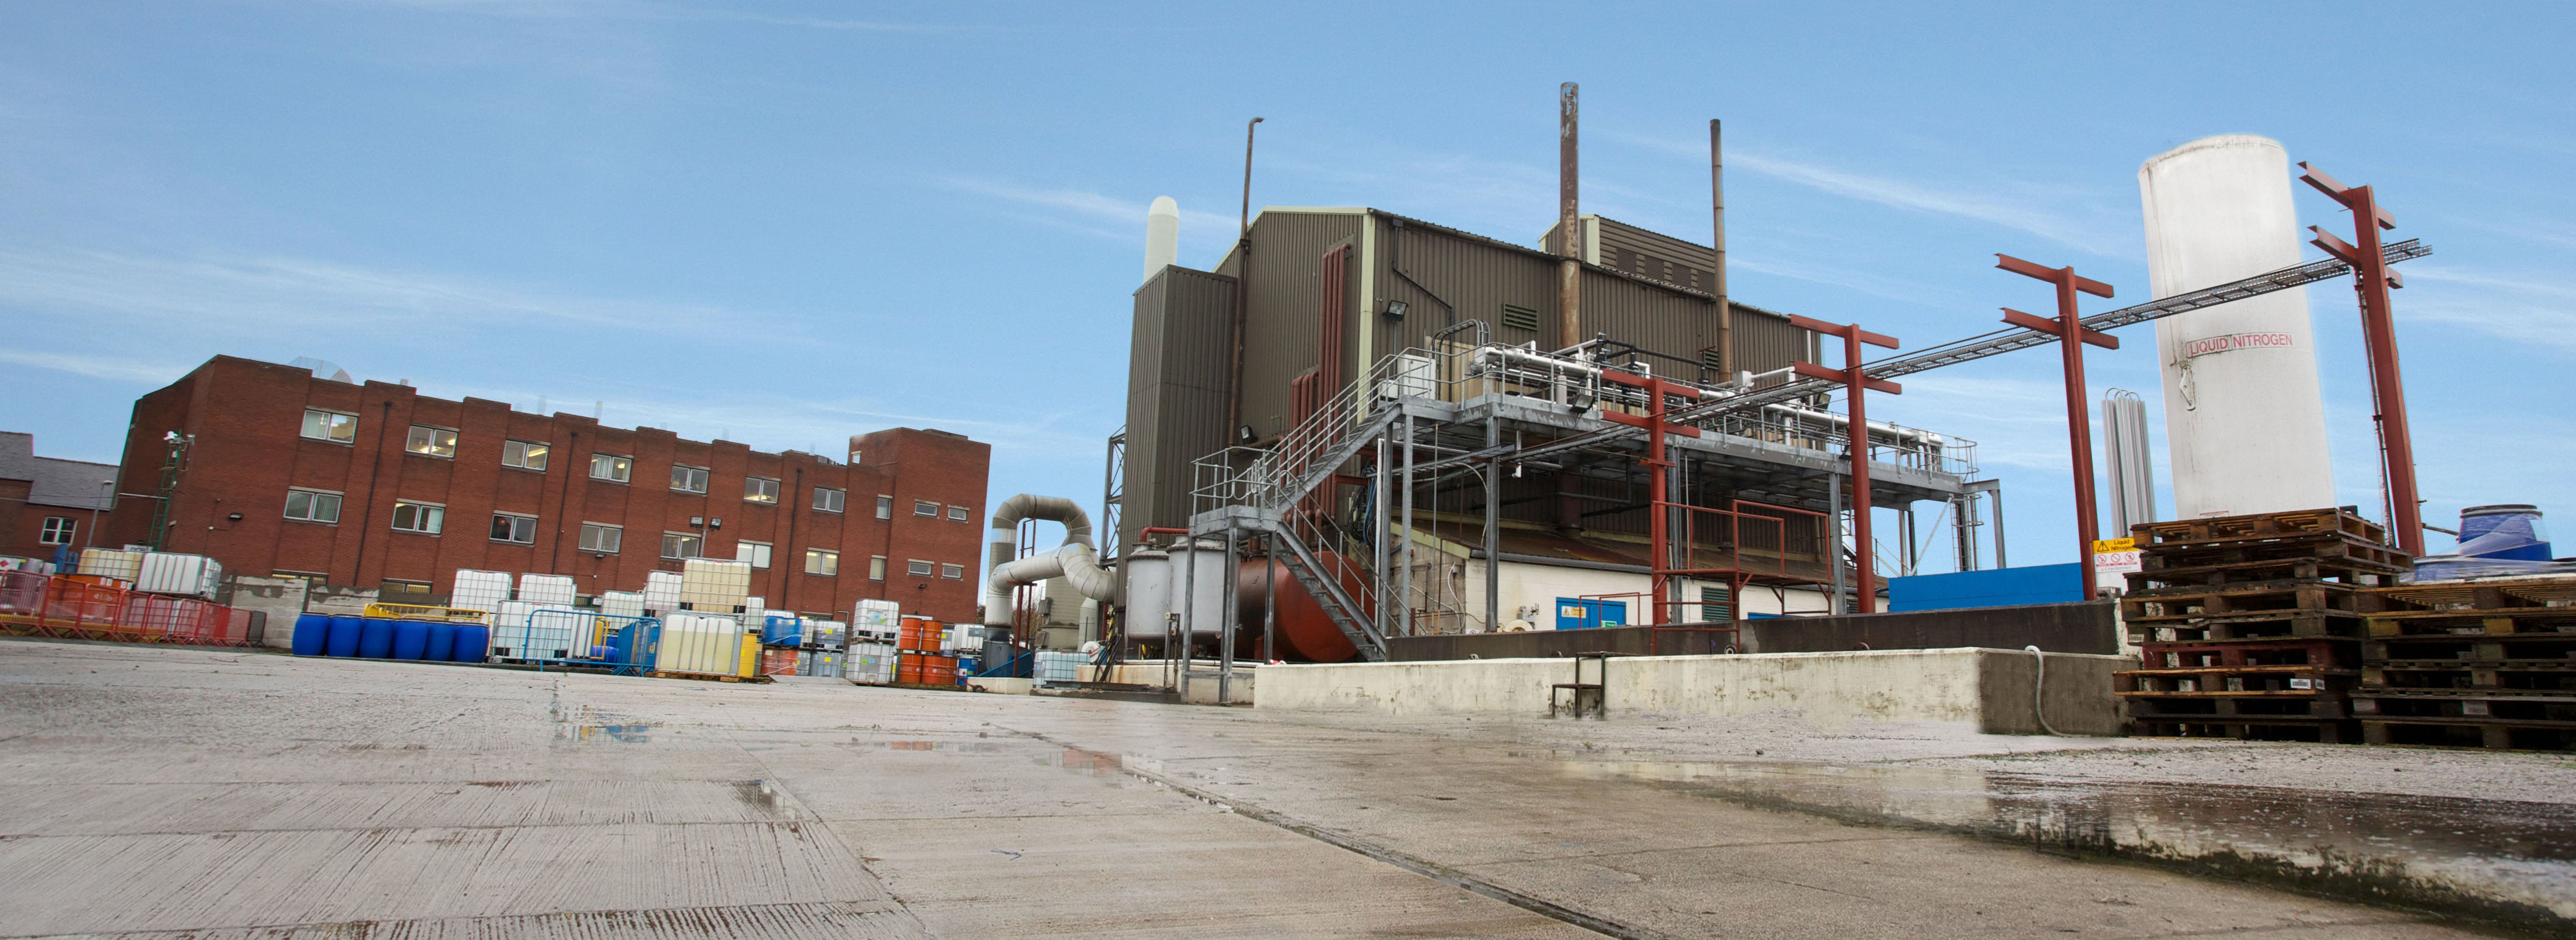 Custom Development and Manufacture of Fine Chemicals